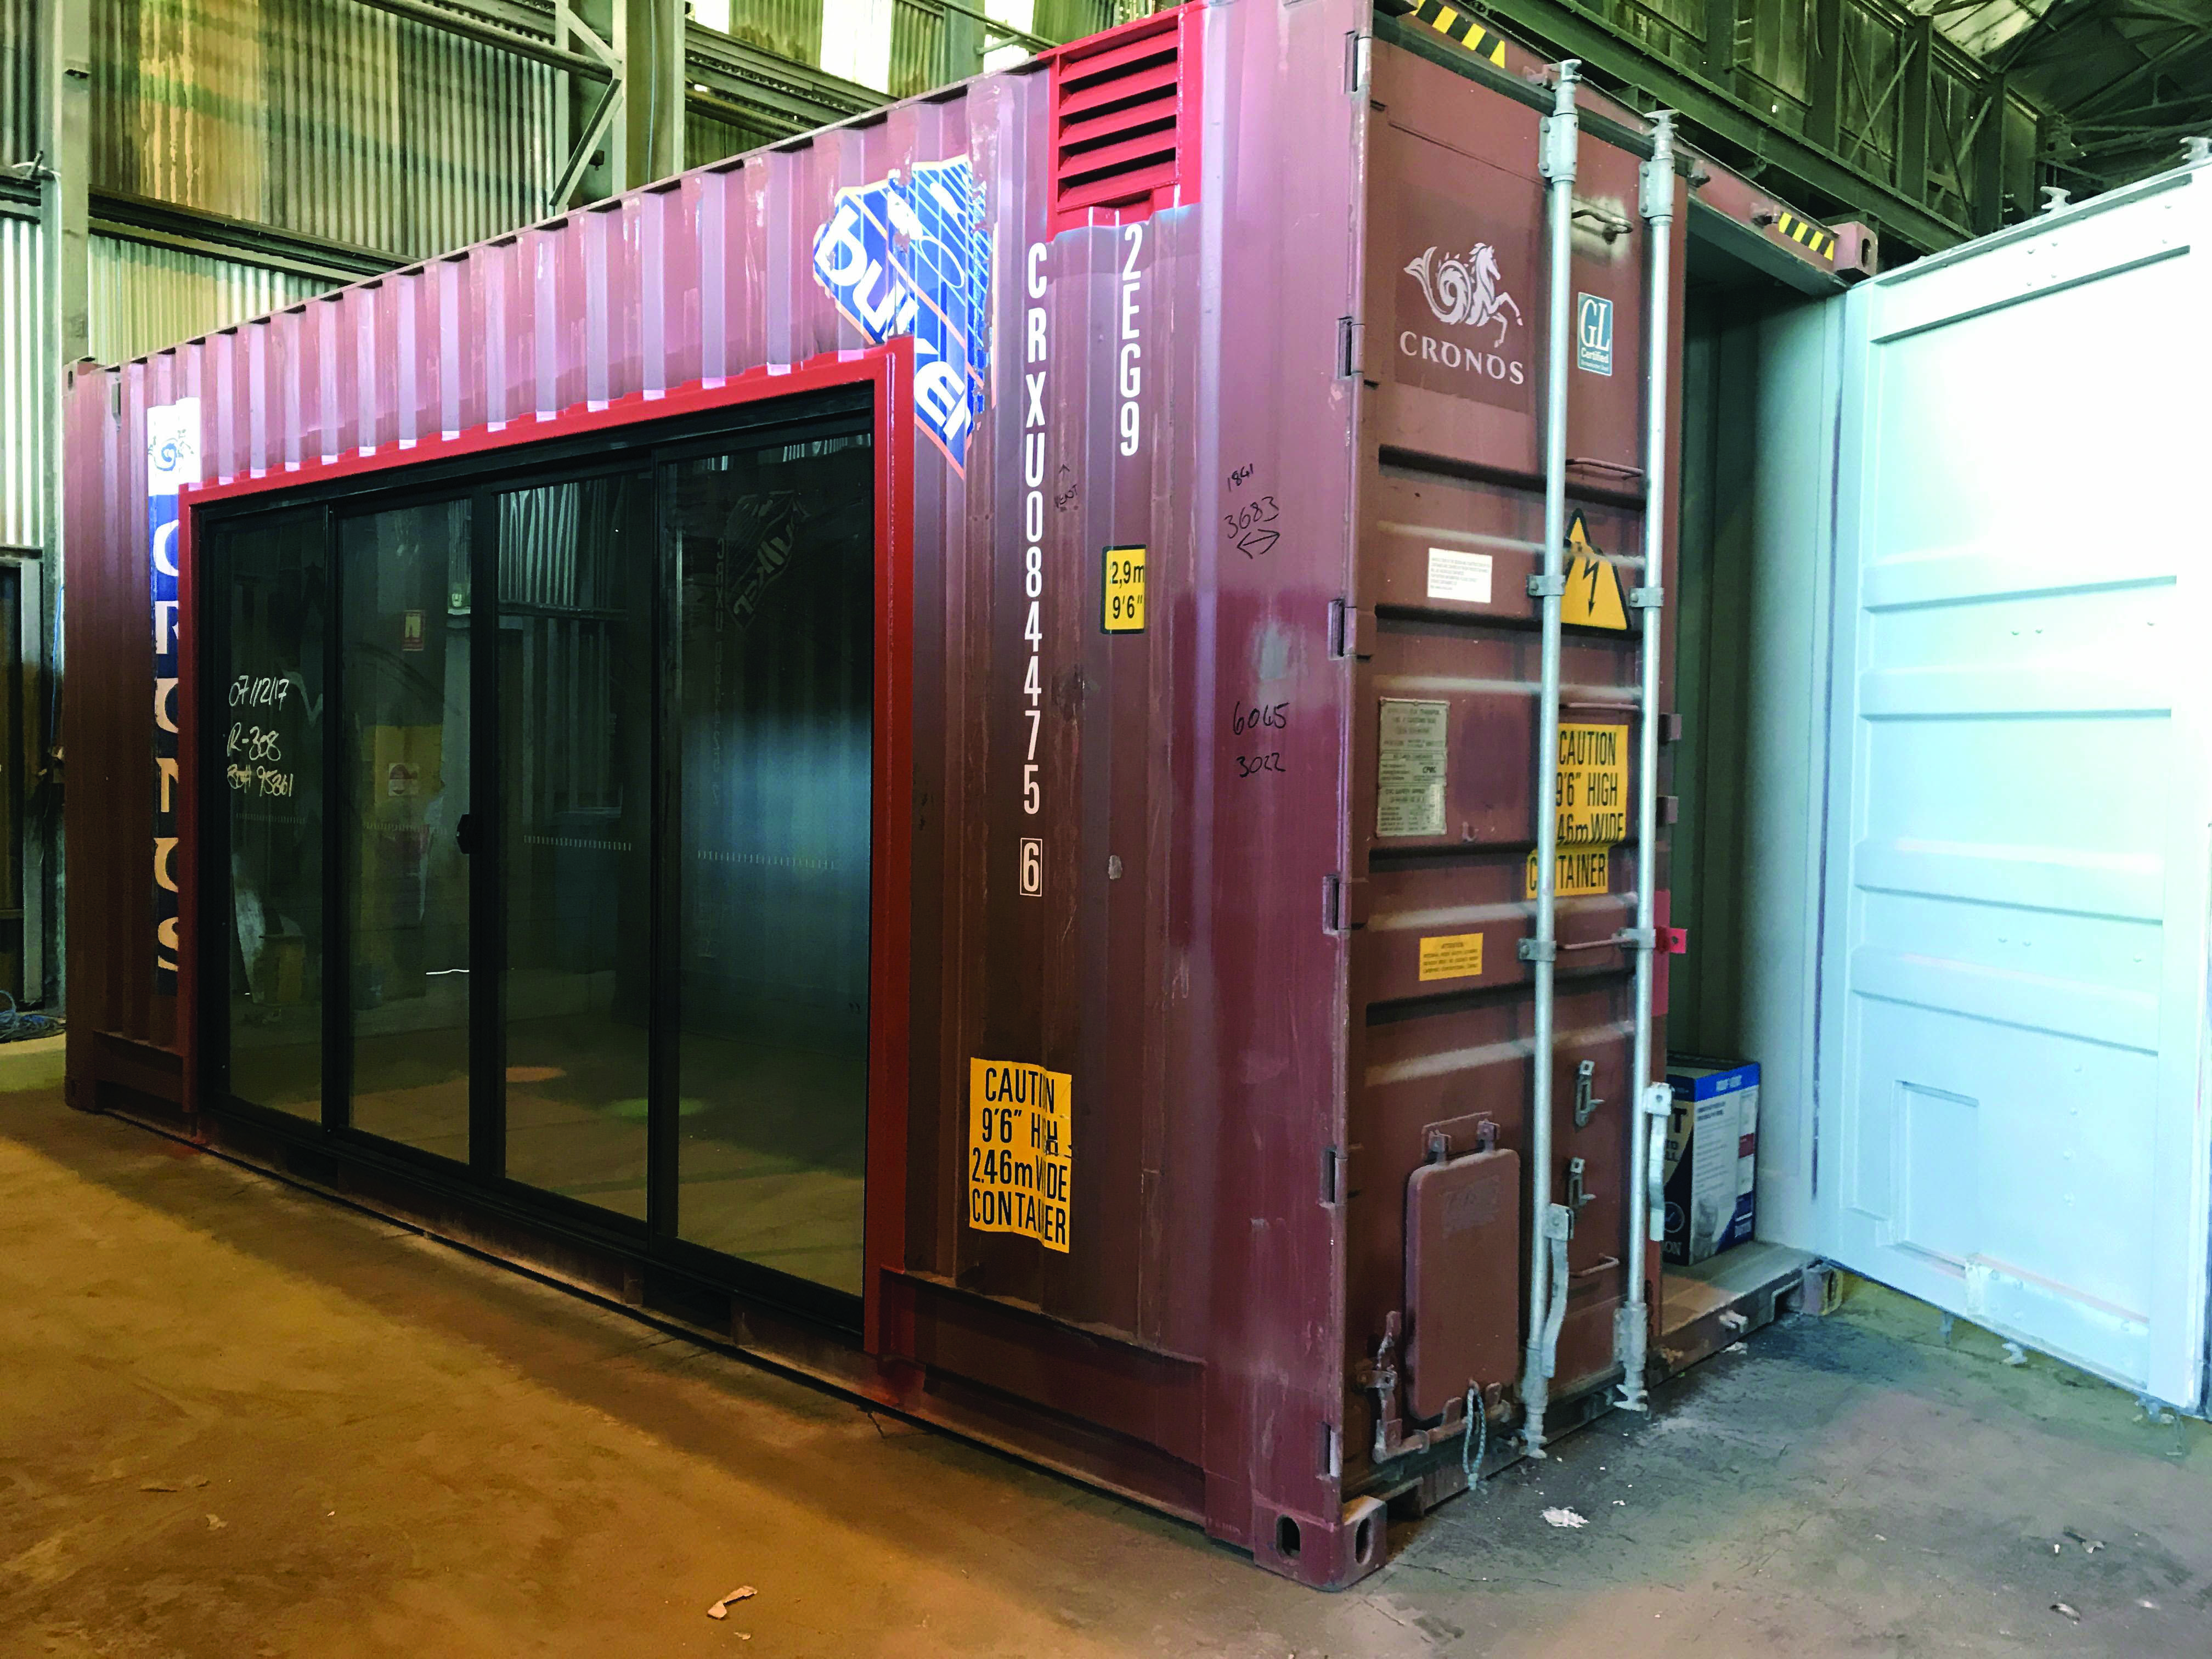 Moving Door Styles For Bedroom Homes Tre Shipping Containers For Sale Sliding Patio Doors Shipping Container